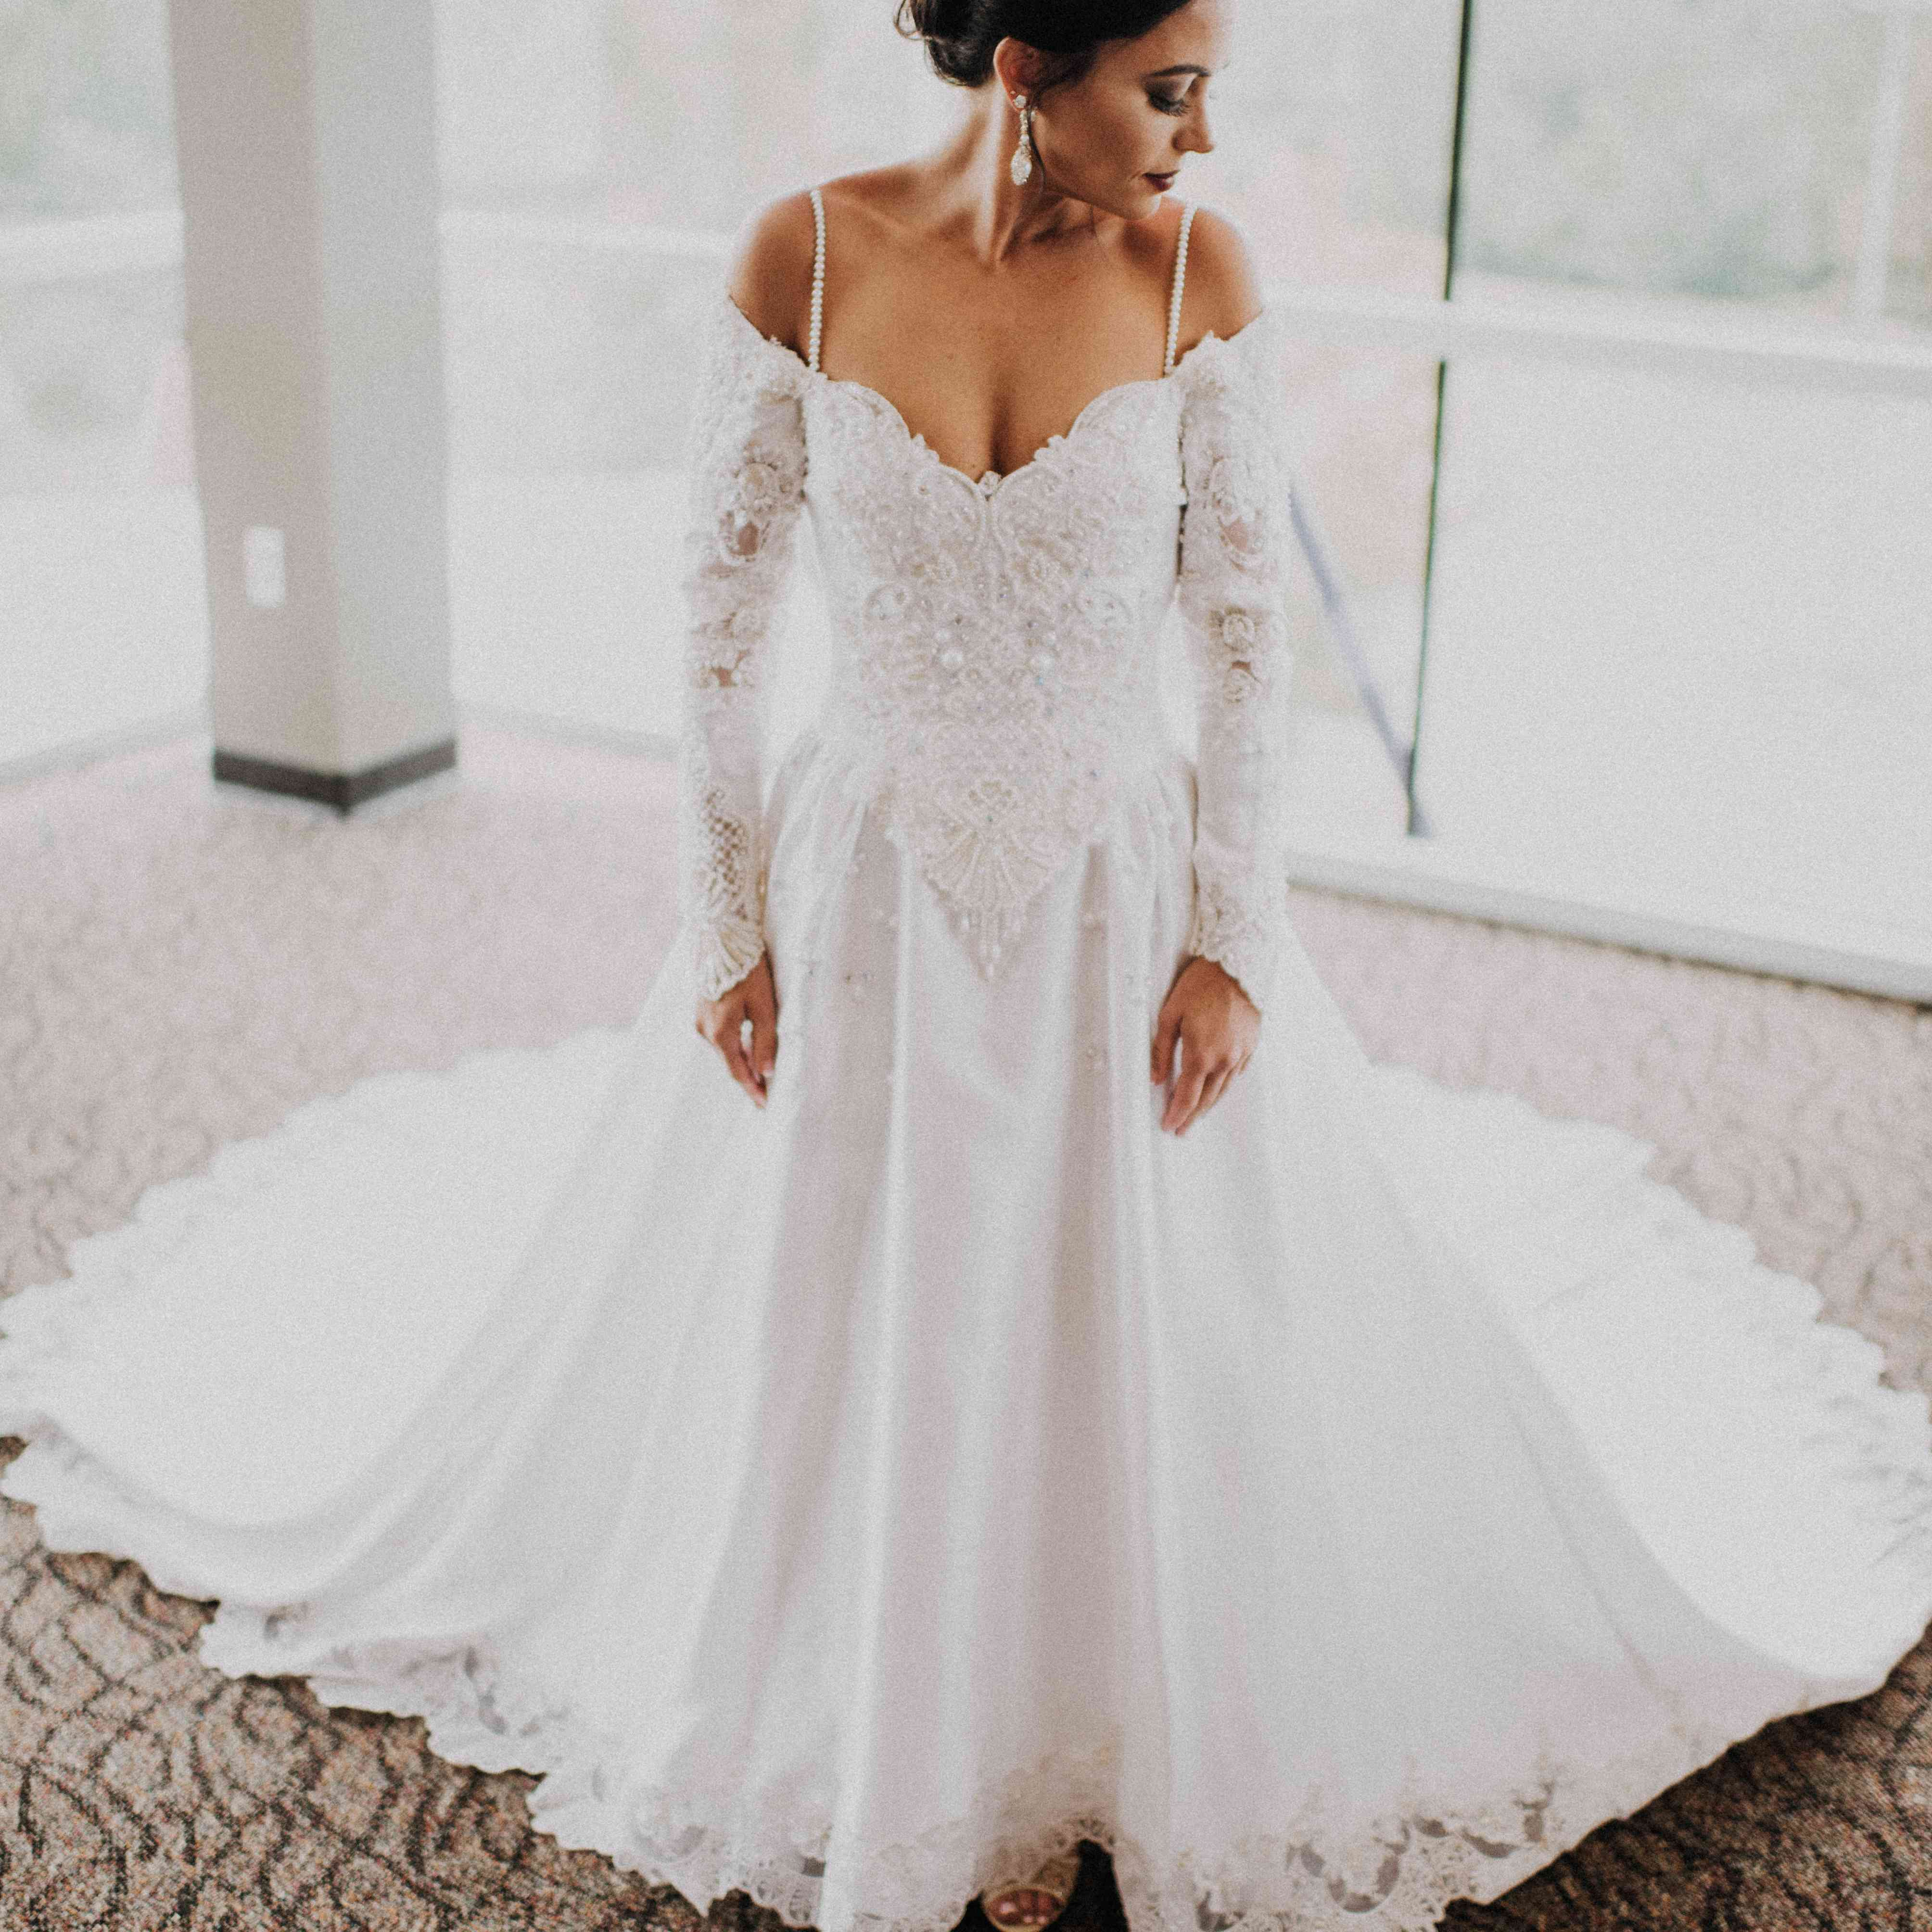 Real Brides Ireland: These 27 Stylish Real Brides Wore Long Sleeves